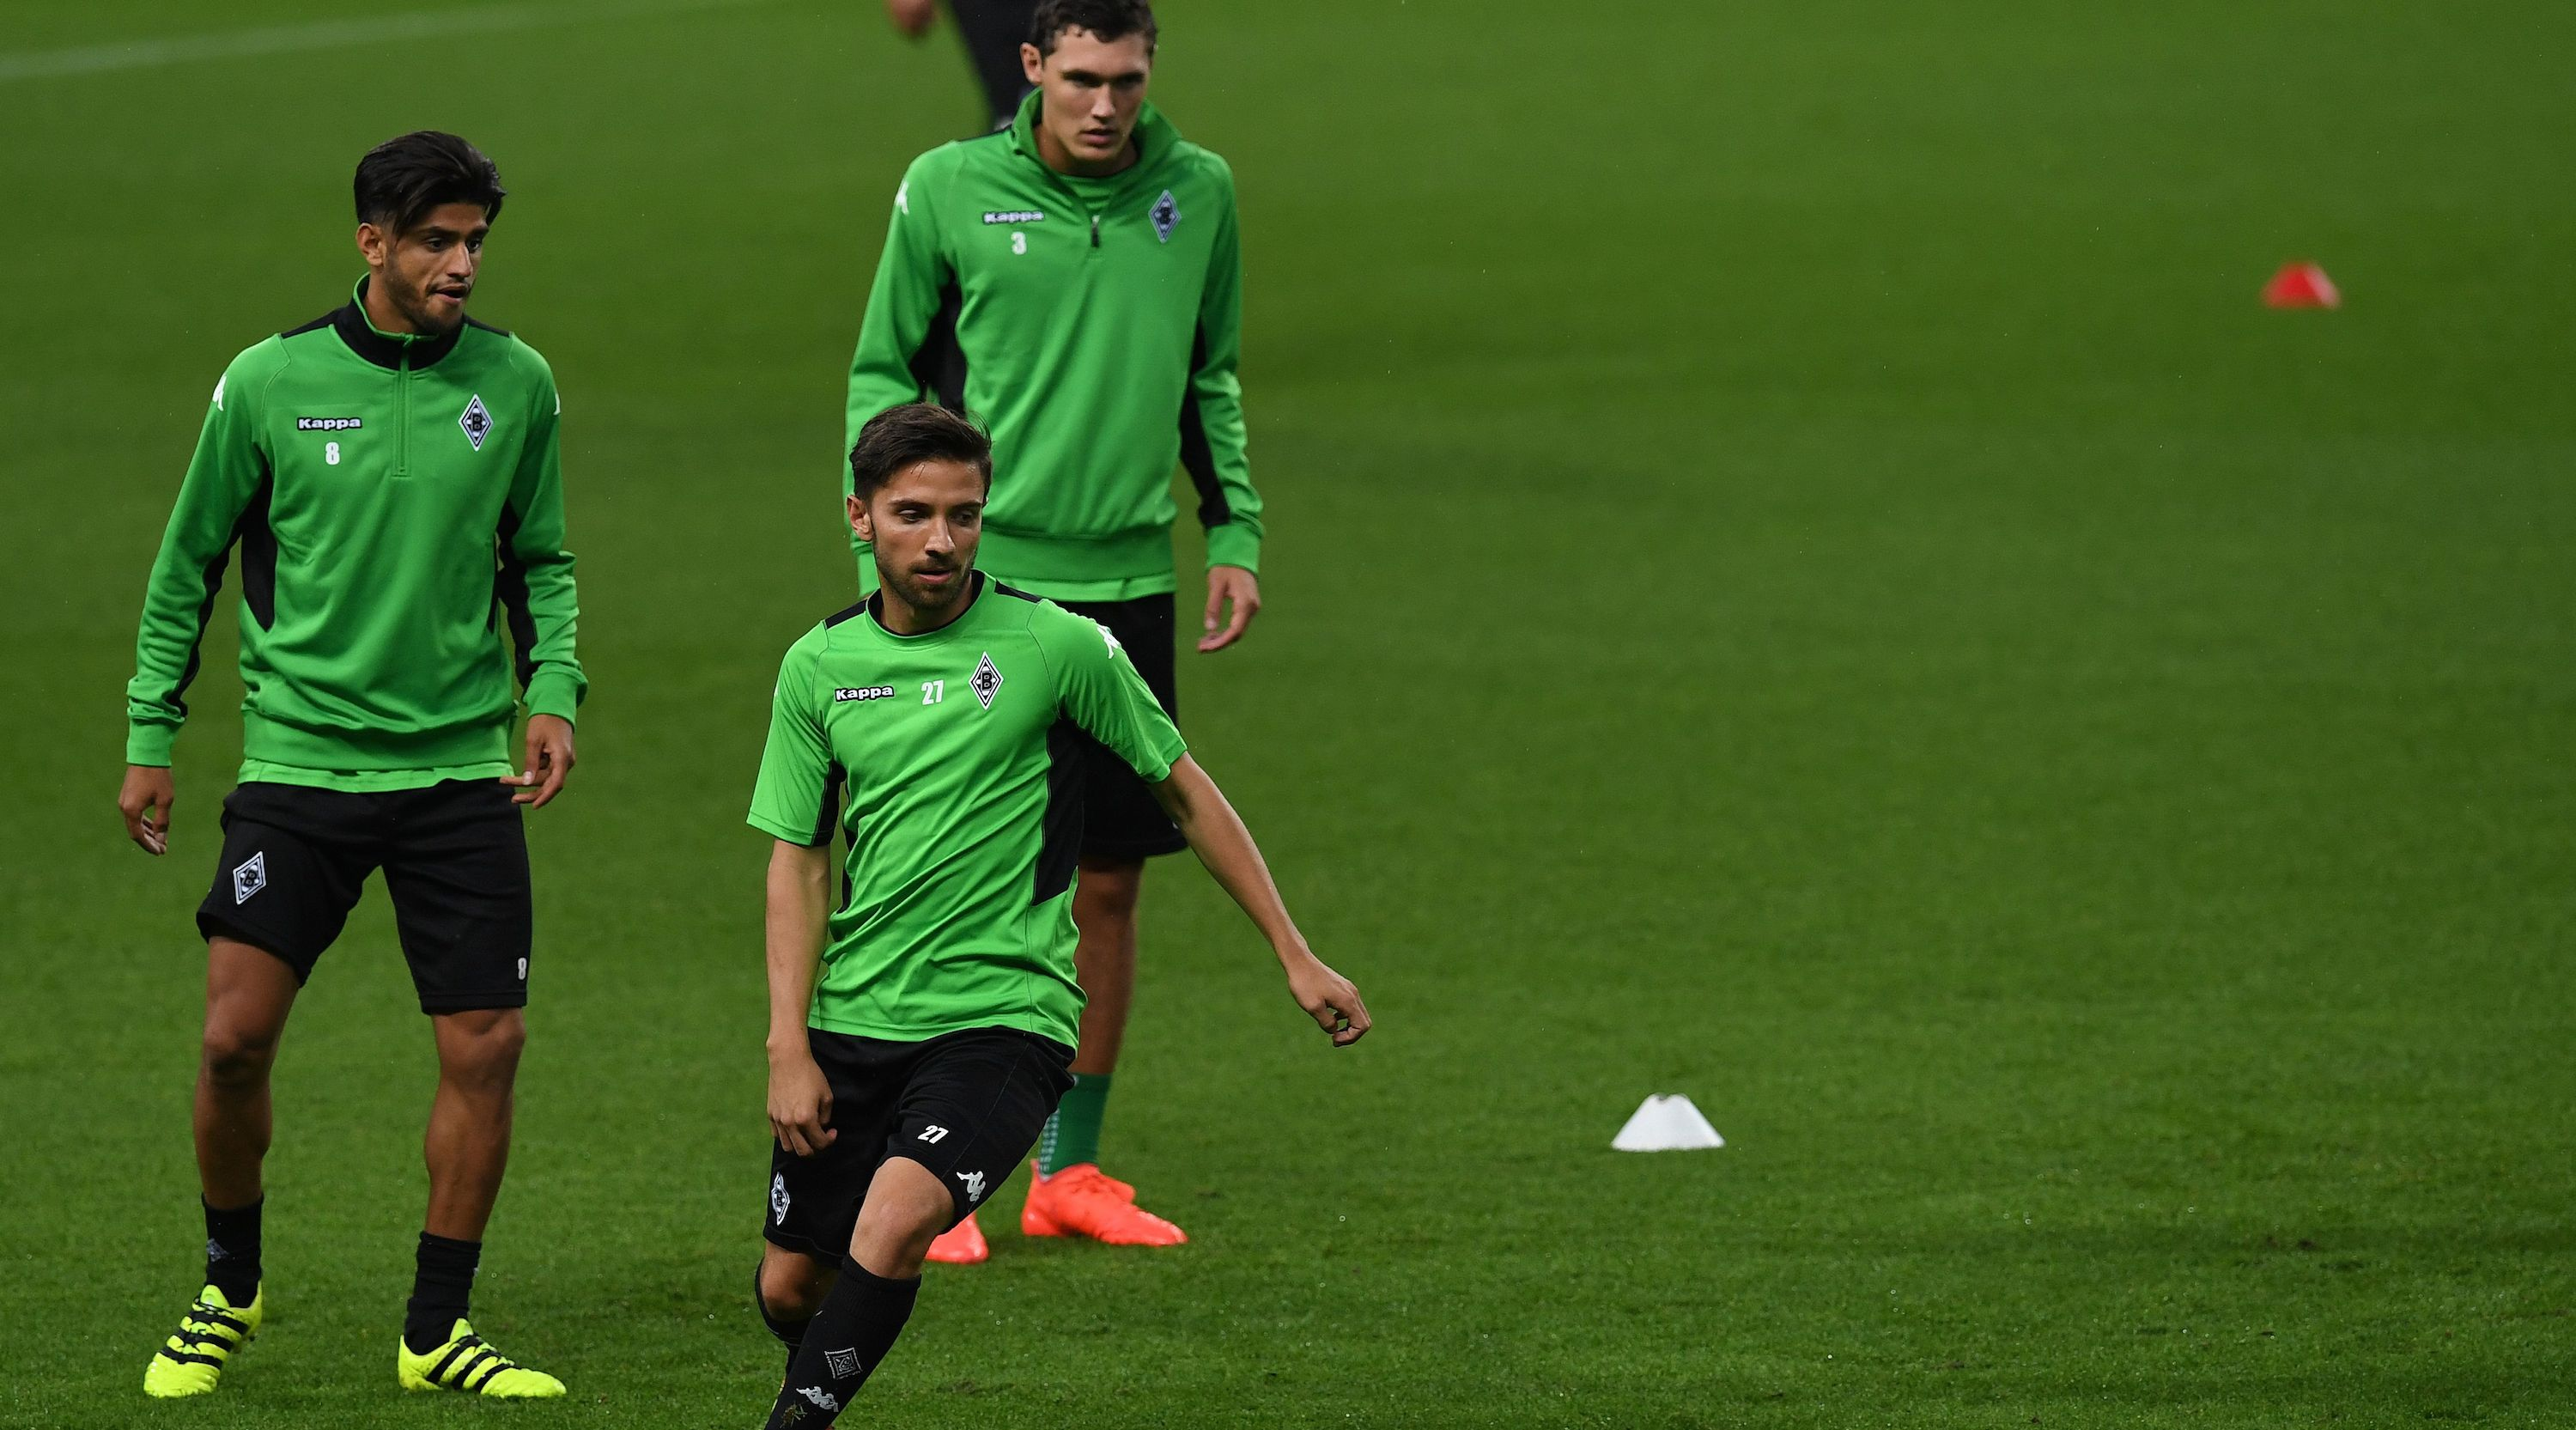 Moenchengladbach's midfielder Mahmoud Dahoud (L), Moenchengladbach's defender Julian Korb (C) and Moenchengladbach's Danish defender Andreas Christensen attend a training session at the Etihad Stadium in Manchester, north west England on September 12, 2016 ahead of their September 13 Champions League game against Borussia Monchengladbach. / AFP / PAUL ELLIS (Photo credit should read PAUL ELLIS/AFP/Getty Images)